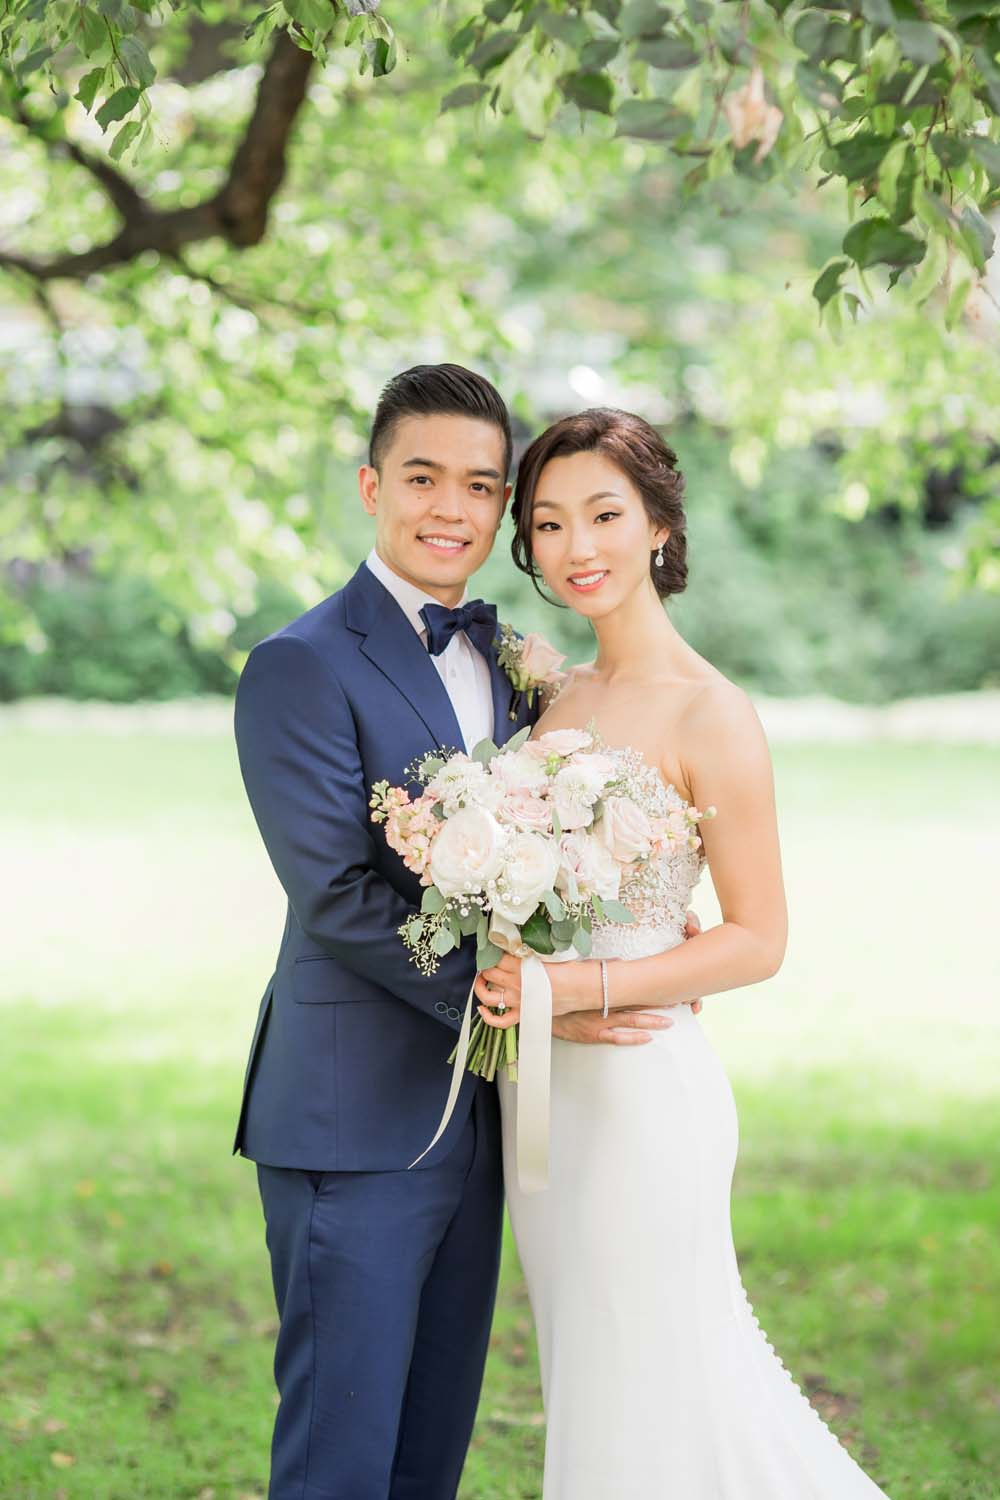 a beautiful blush and gold wedding in toronto - bride and groom